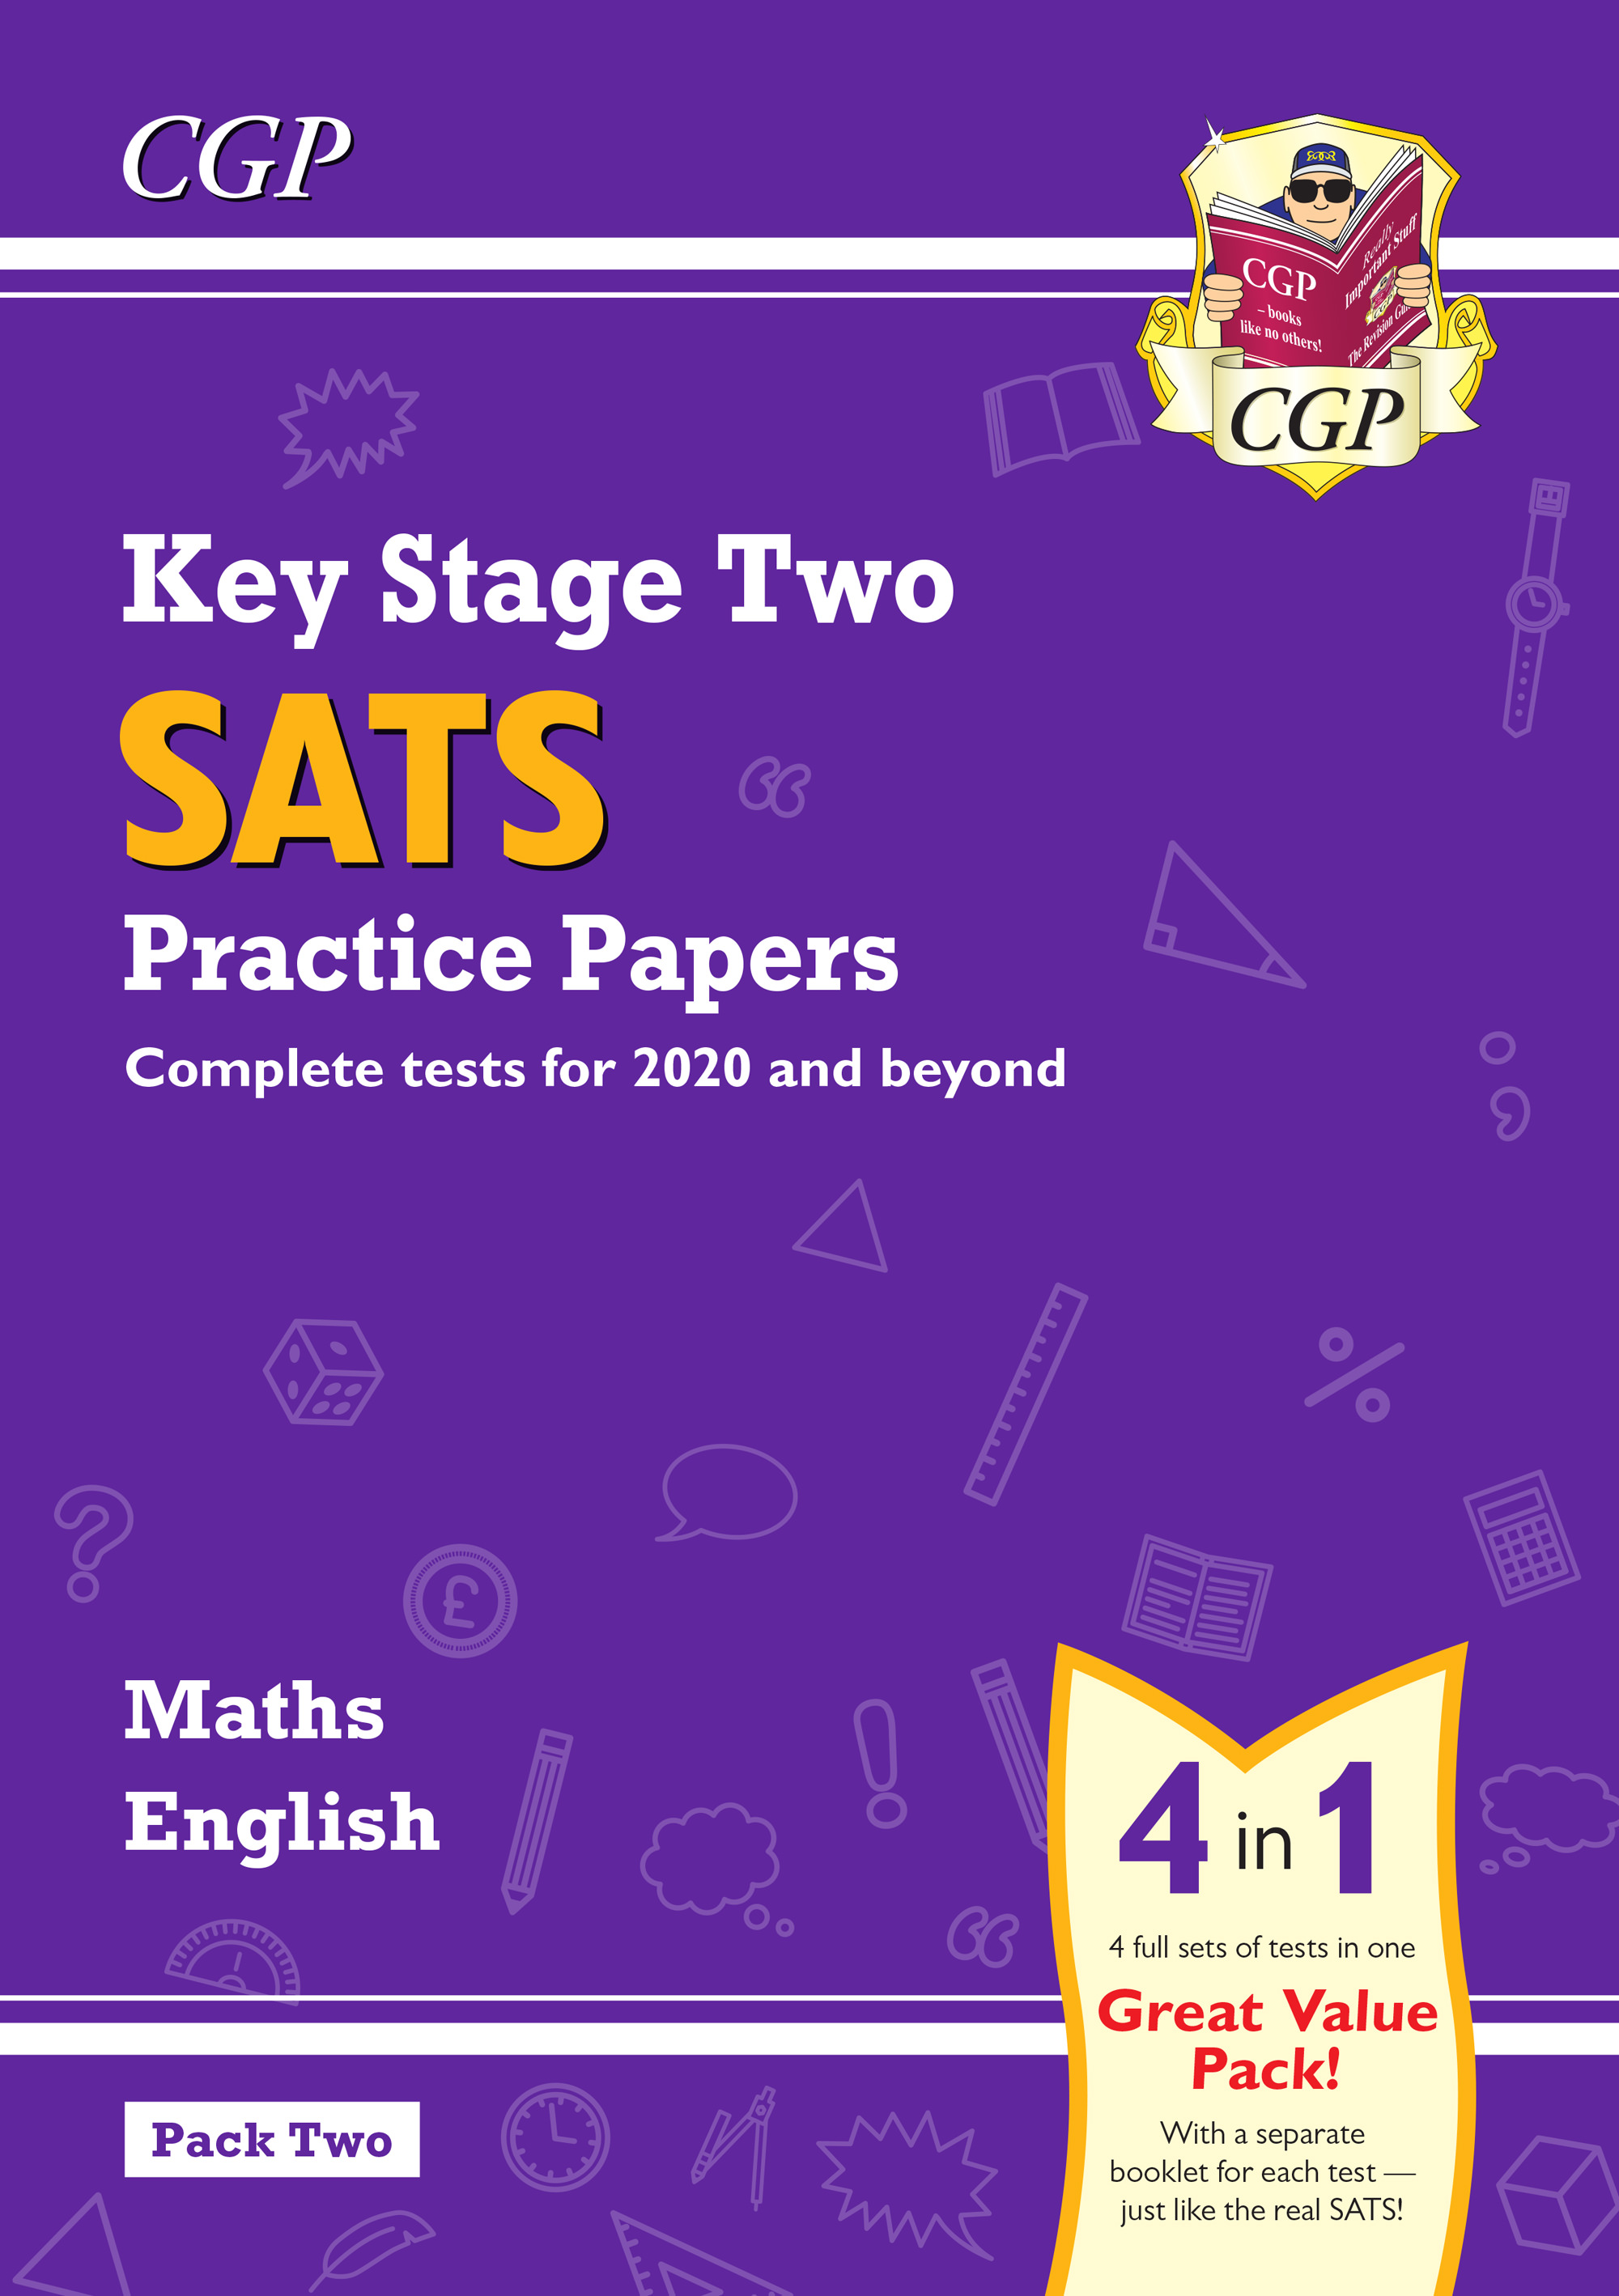 MEB223 - KS2 Maths and English SATS Practice Papers Pack (for the 2021 tests) - Pack 2